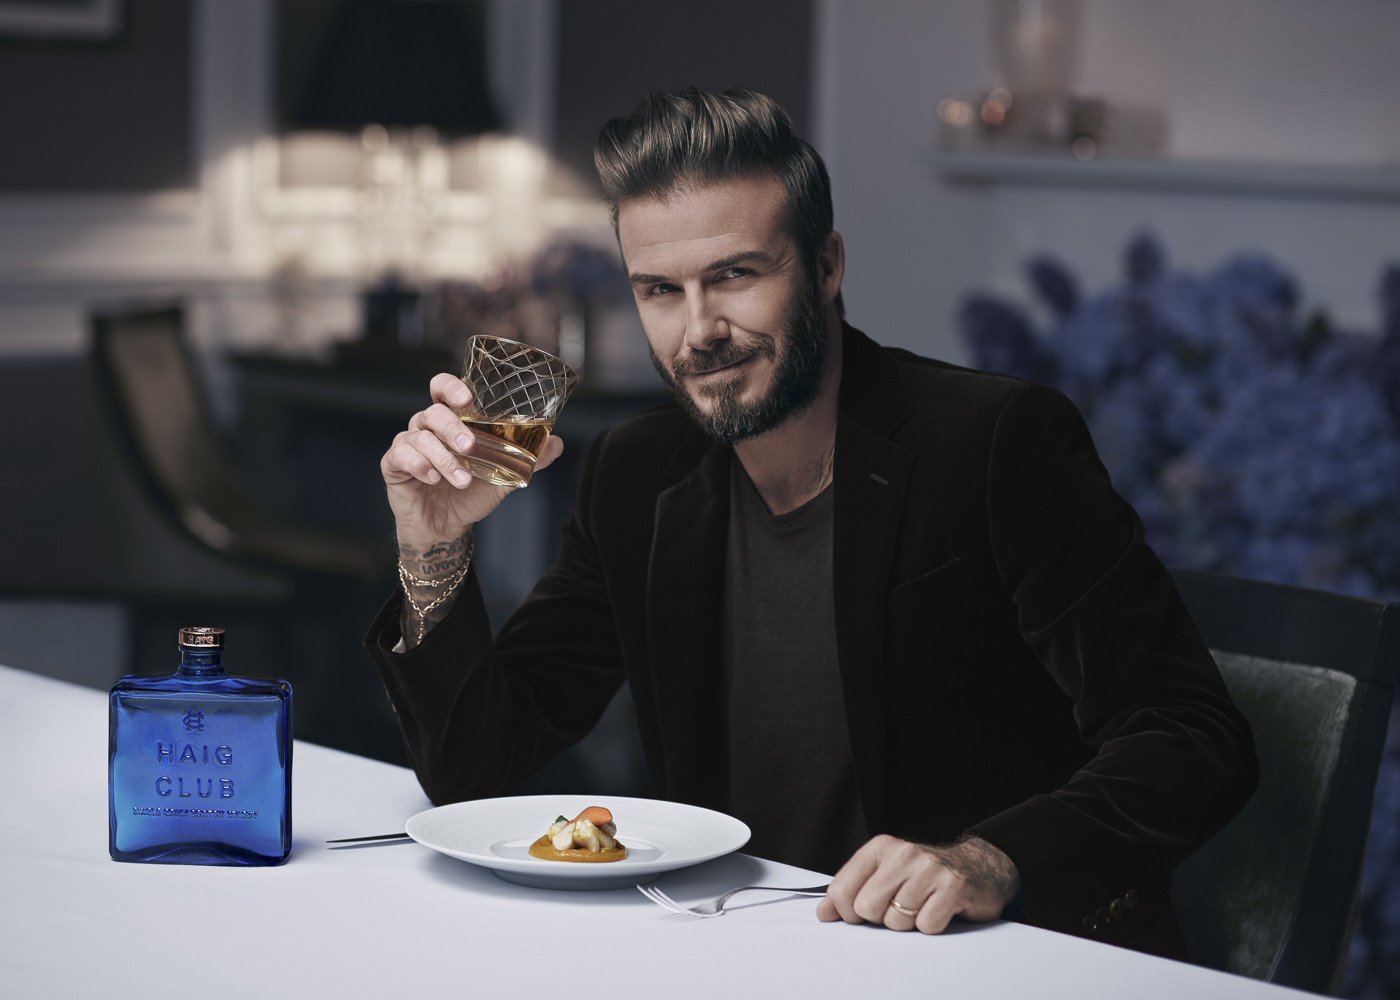 I recently photographedDavid Beckham for the launch ofHaig ClubLondon